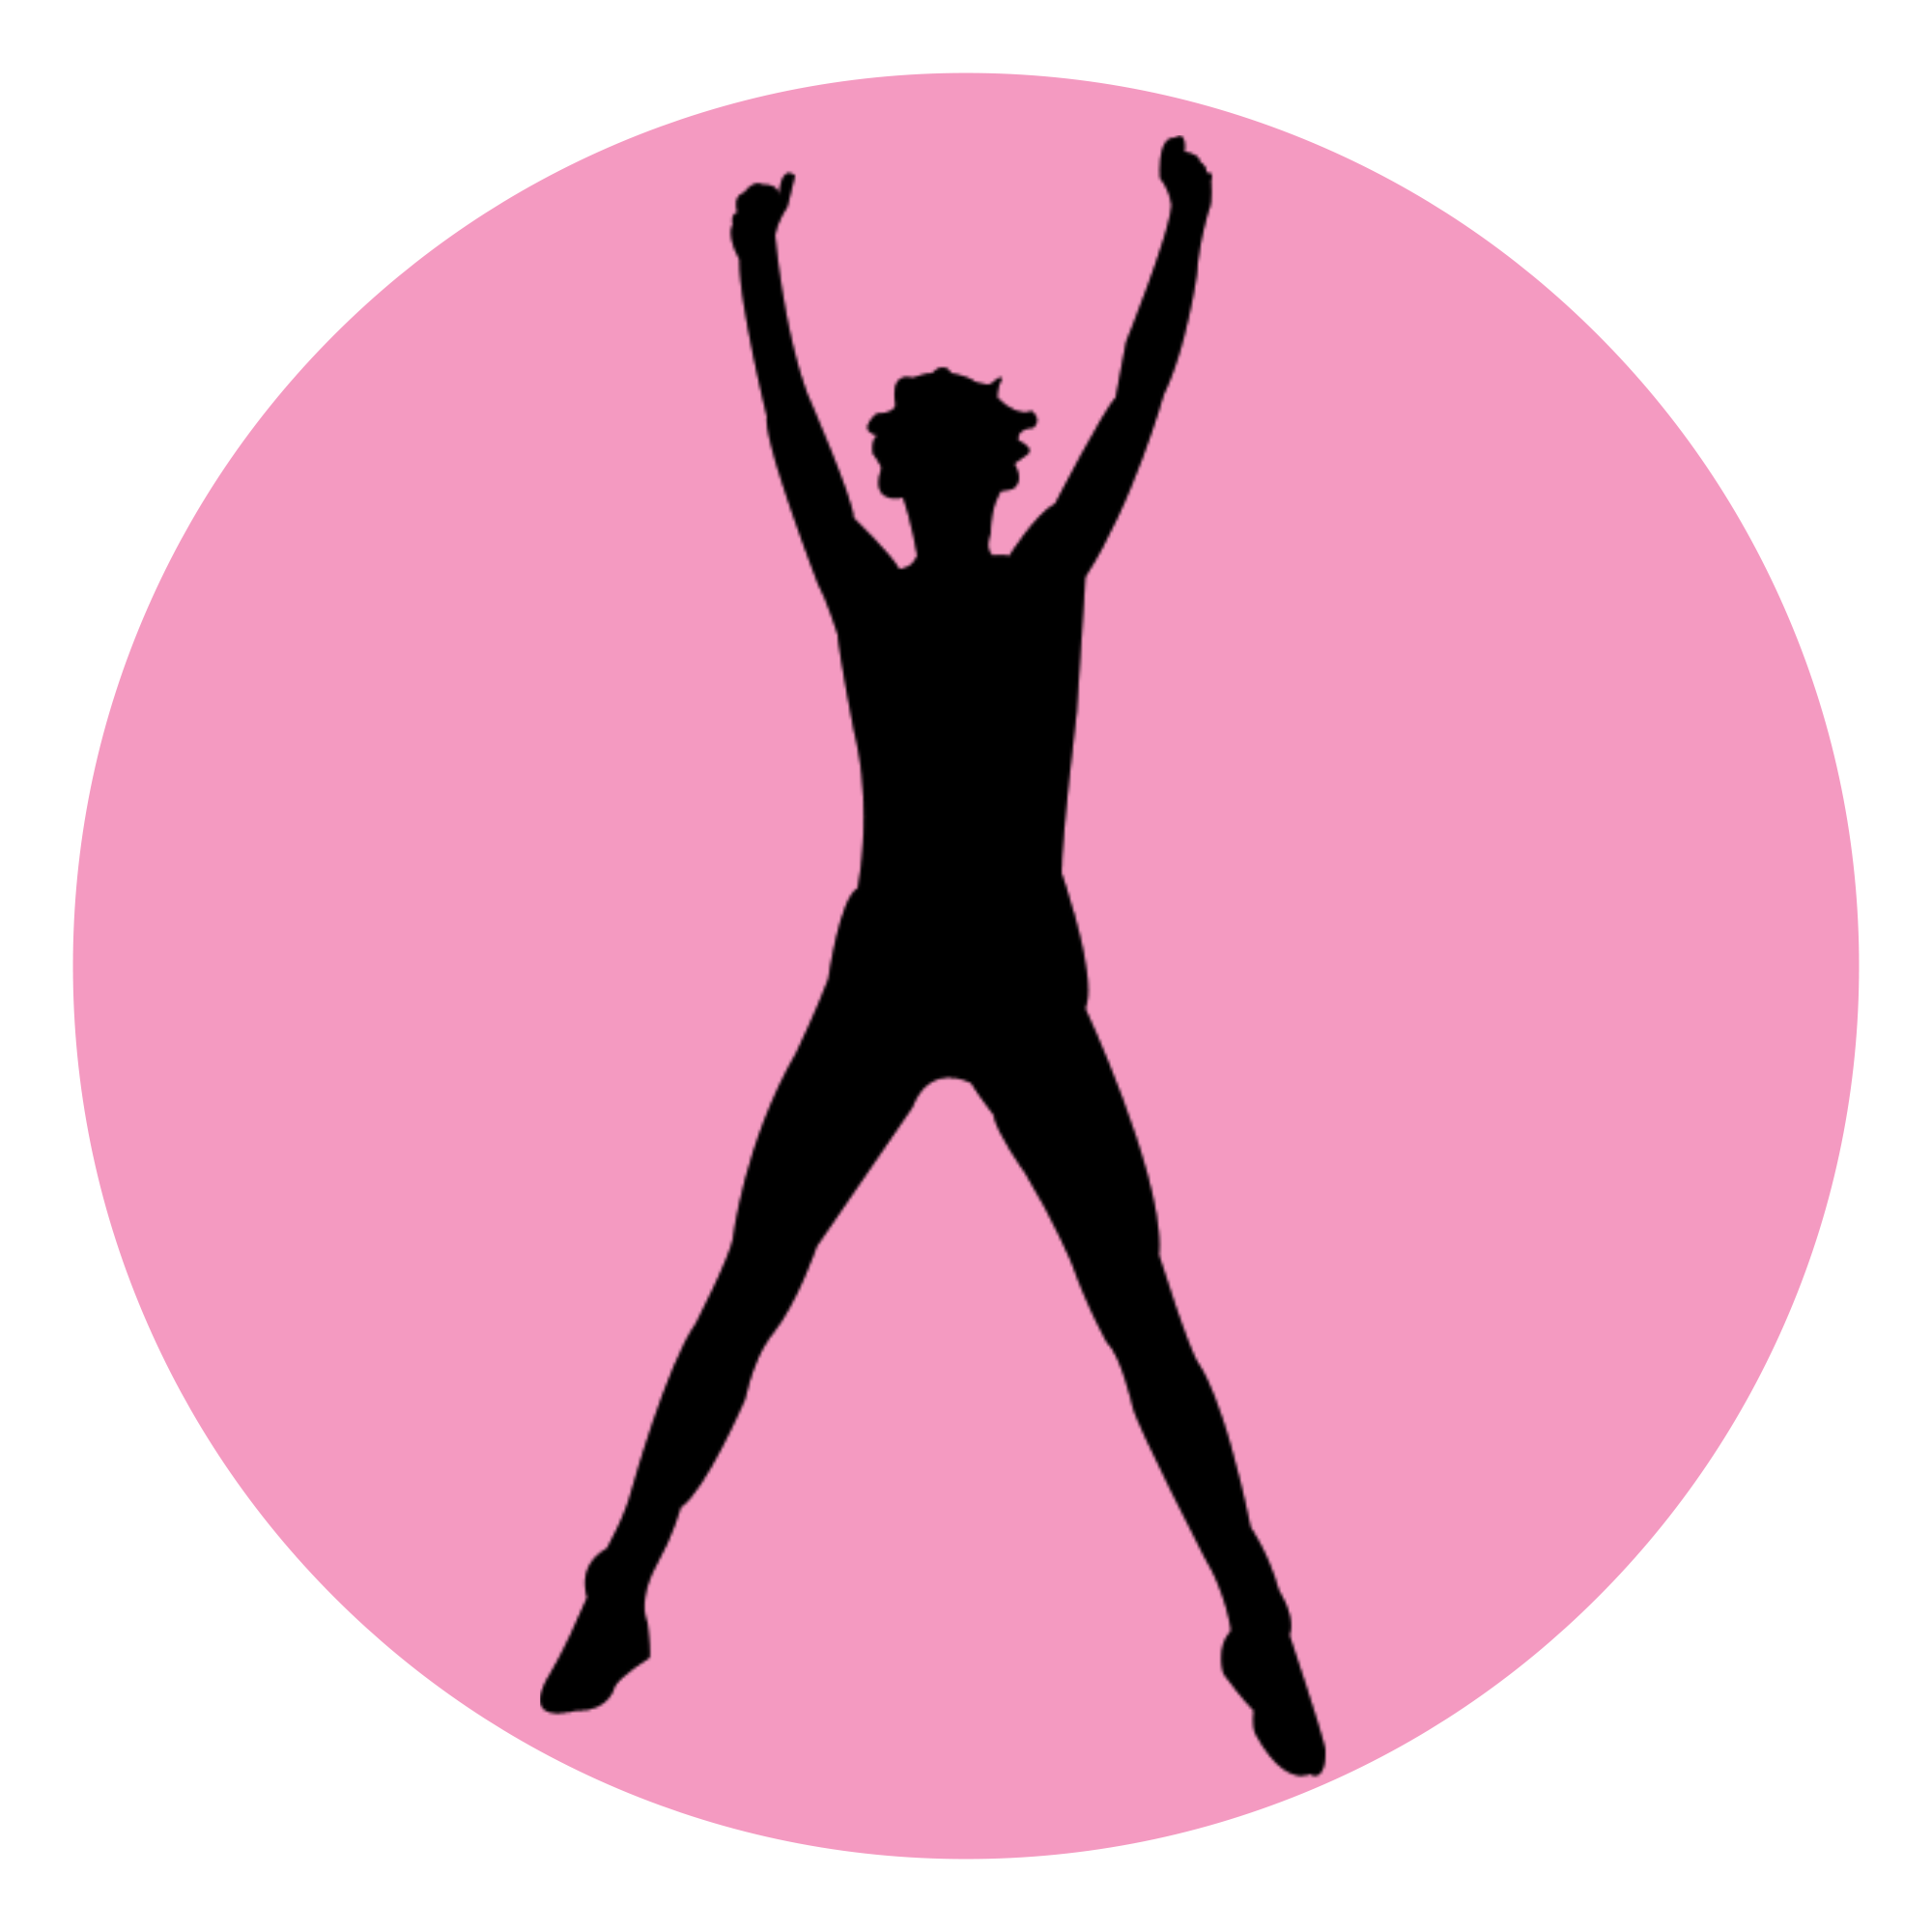 exercise vector image 04